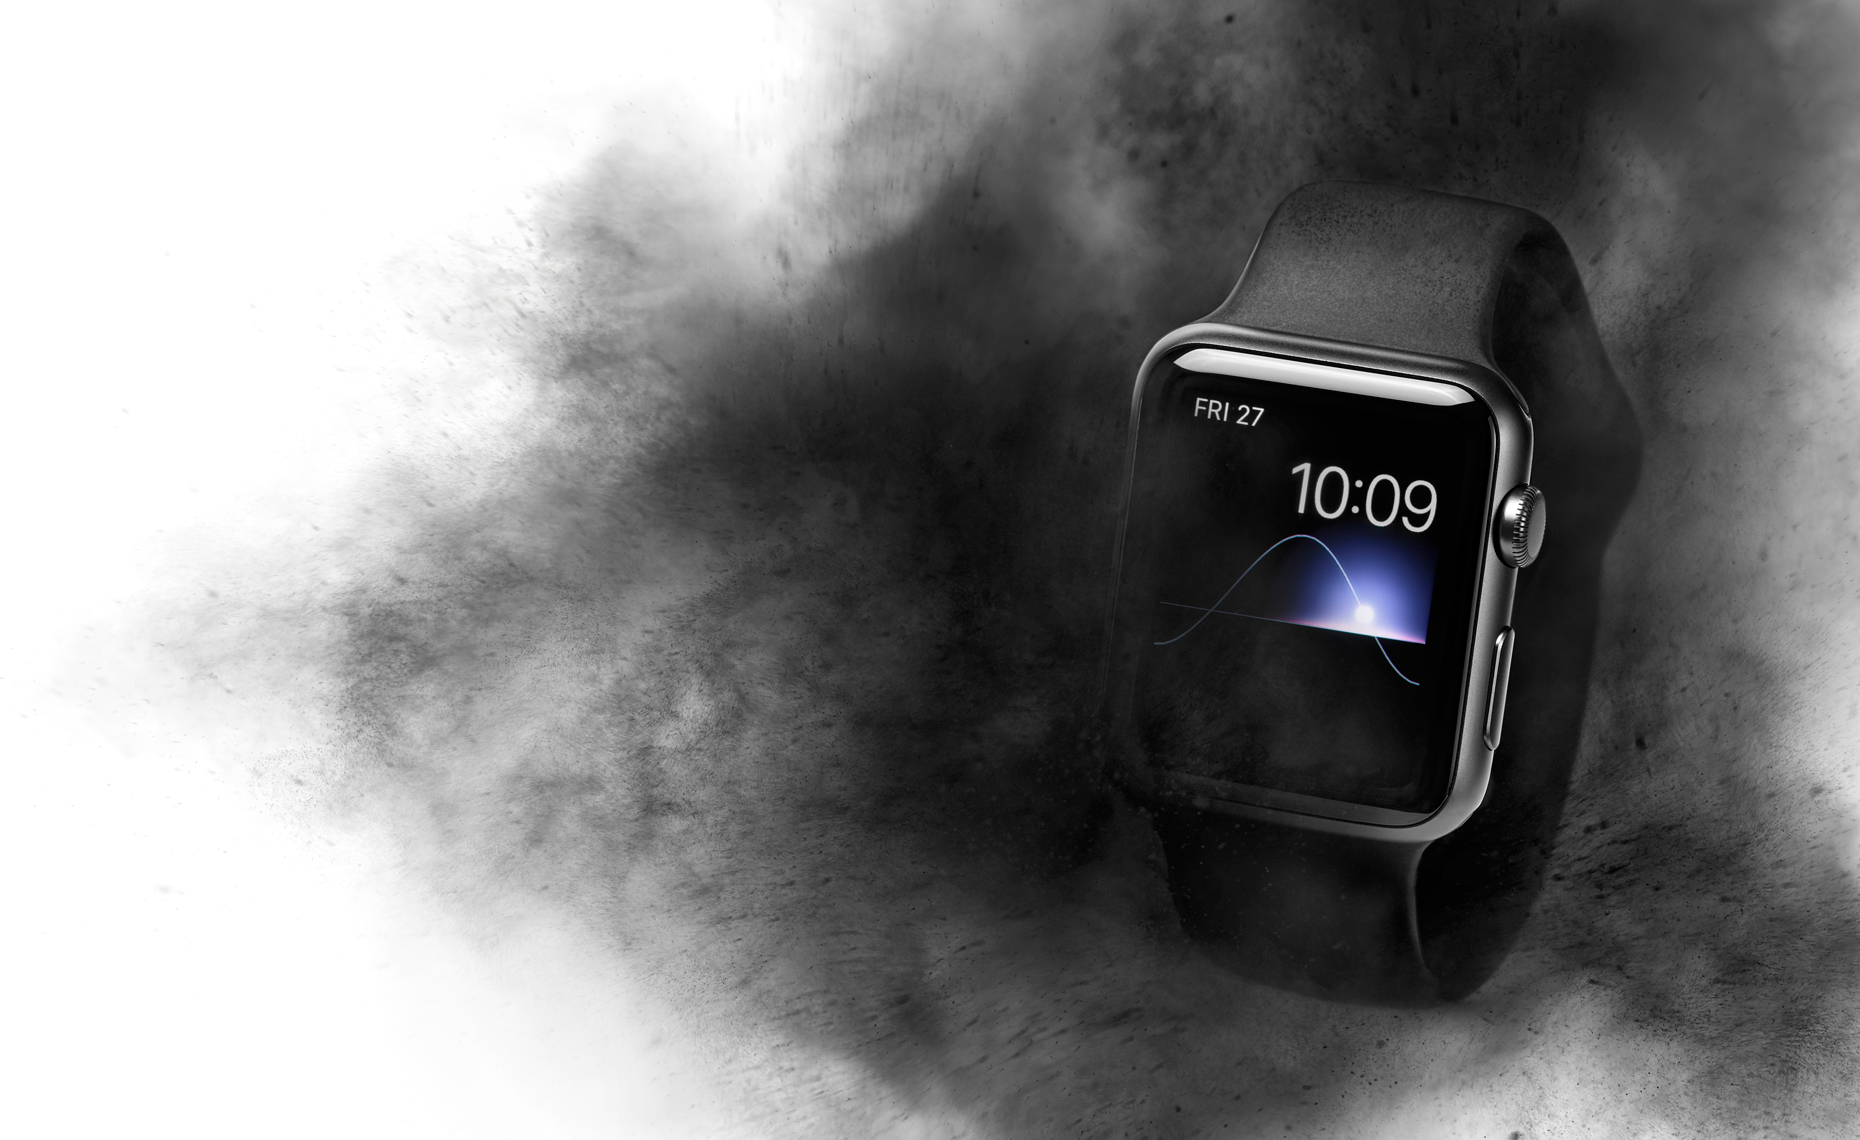 Apple Watch Black Smoke